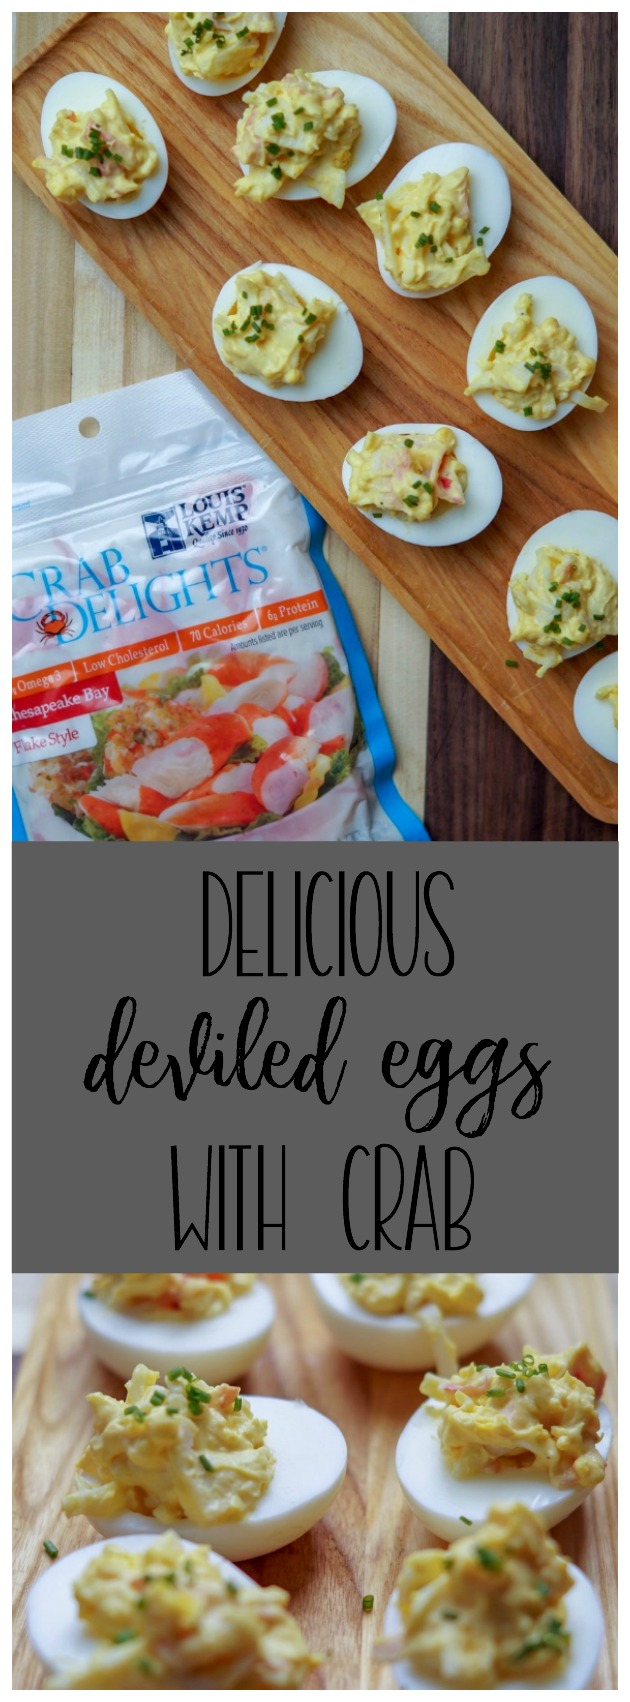 Looking to spice up your appetizers this holiday season? These crab deviled eggs are just what you are looking for! Click through for the easy recipe!